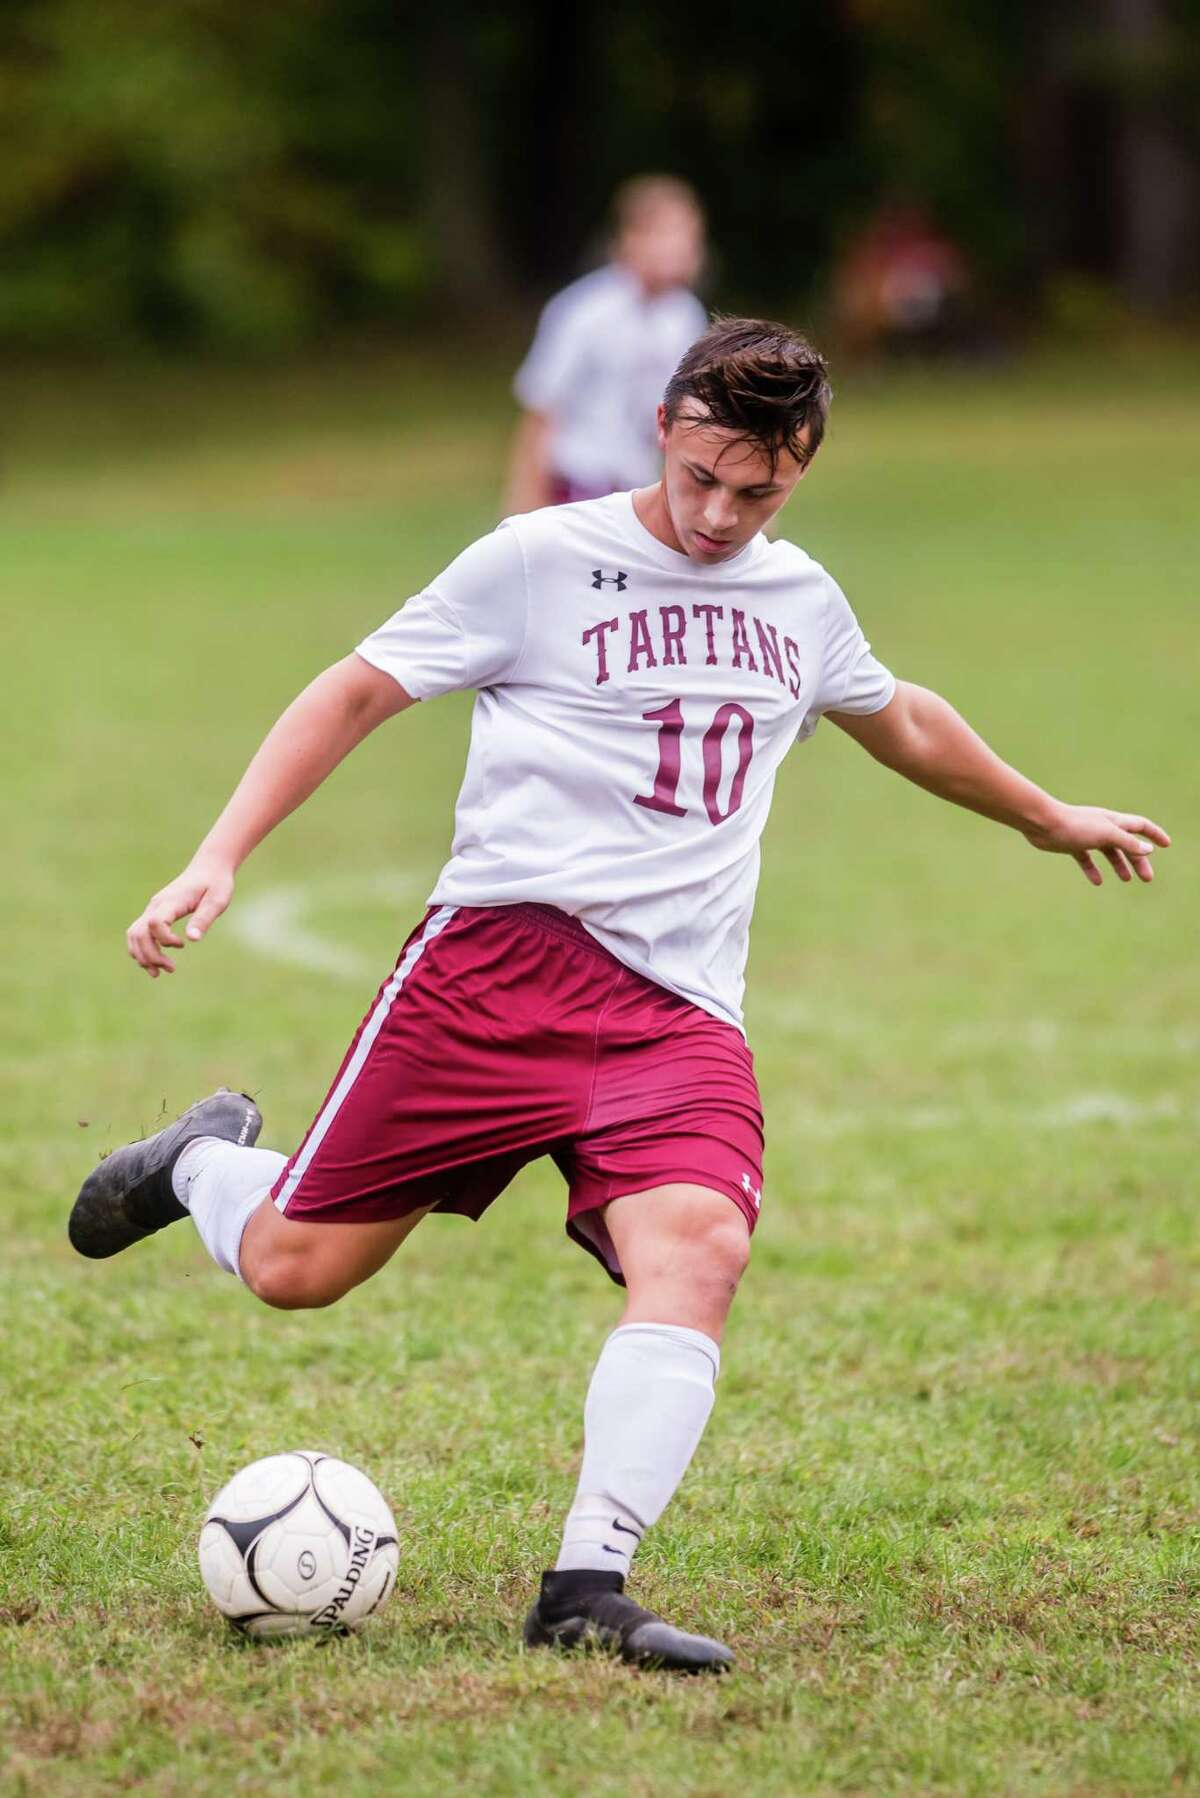 Scotia's Jared O'Connor kicks the ball as Maple Hill faced off against Scotia during the Maple Hill Soccer Tournament at Maple Hill in Schodack, NY Monday, October 8th, 2018. Photo by Eric Jenks